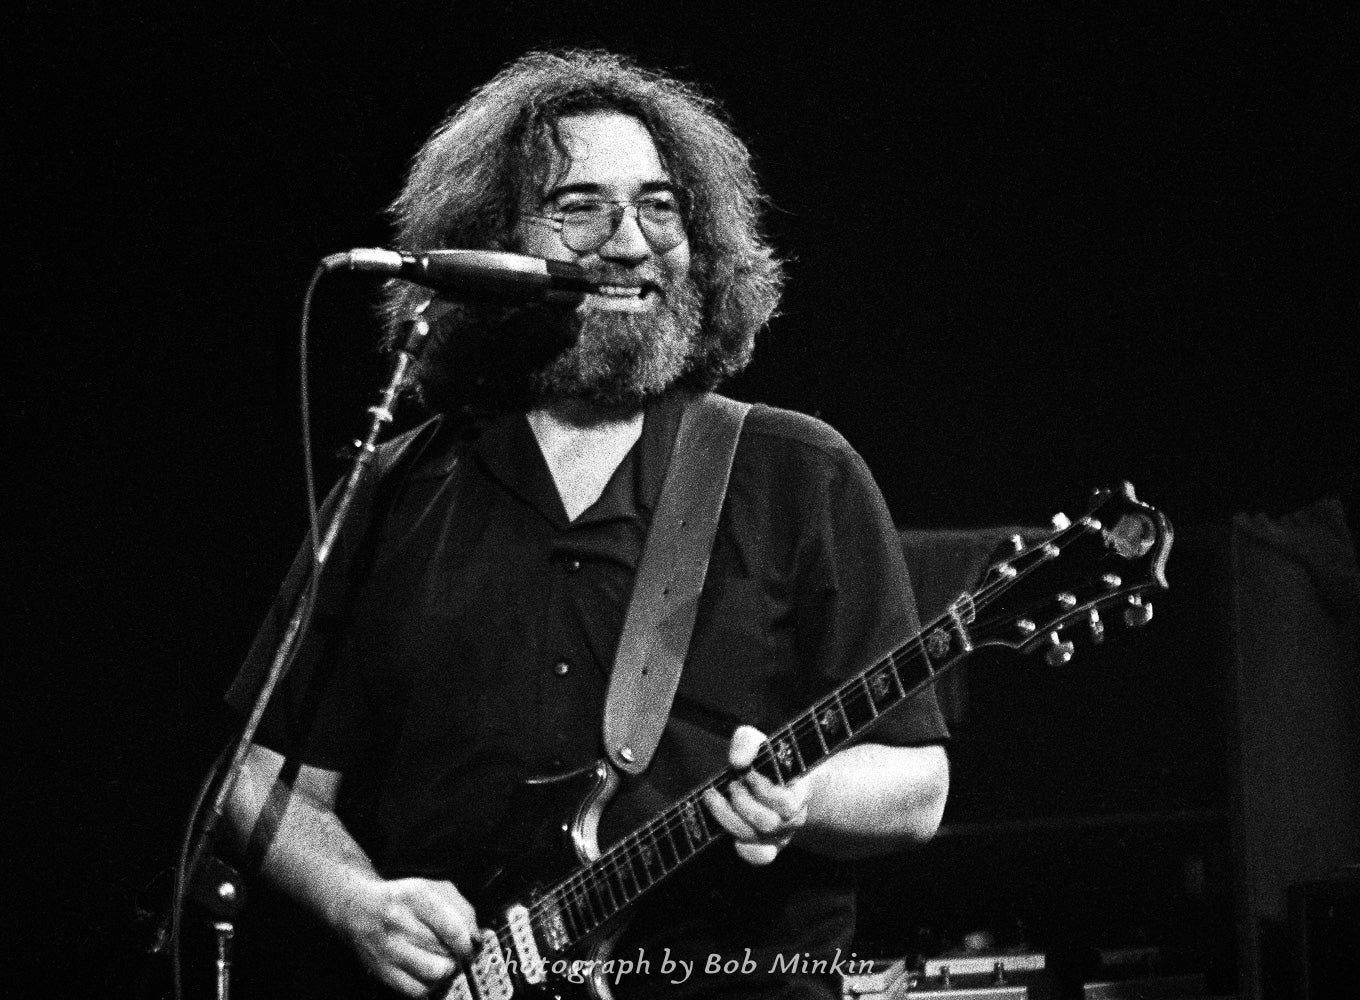 Jerry Garcia - Grateful Dead - Hollywood Sportatorium, Pembroke Pines, FL 11.26.80 - Bob Minkin Photography